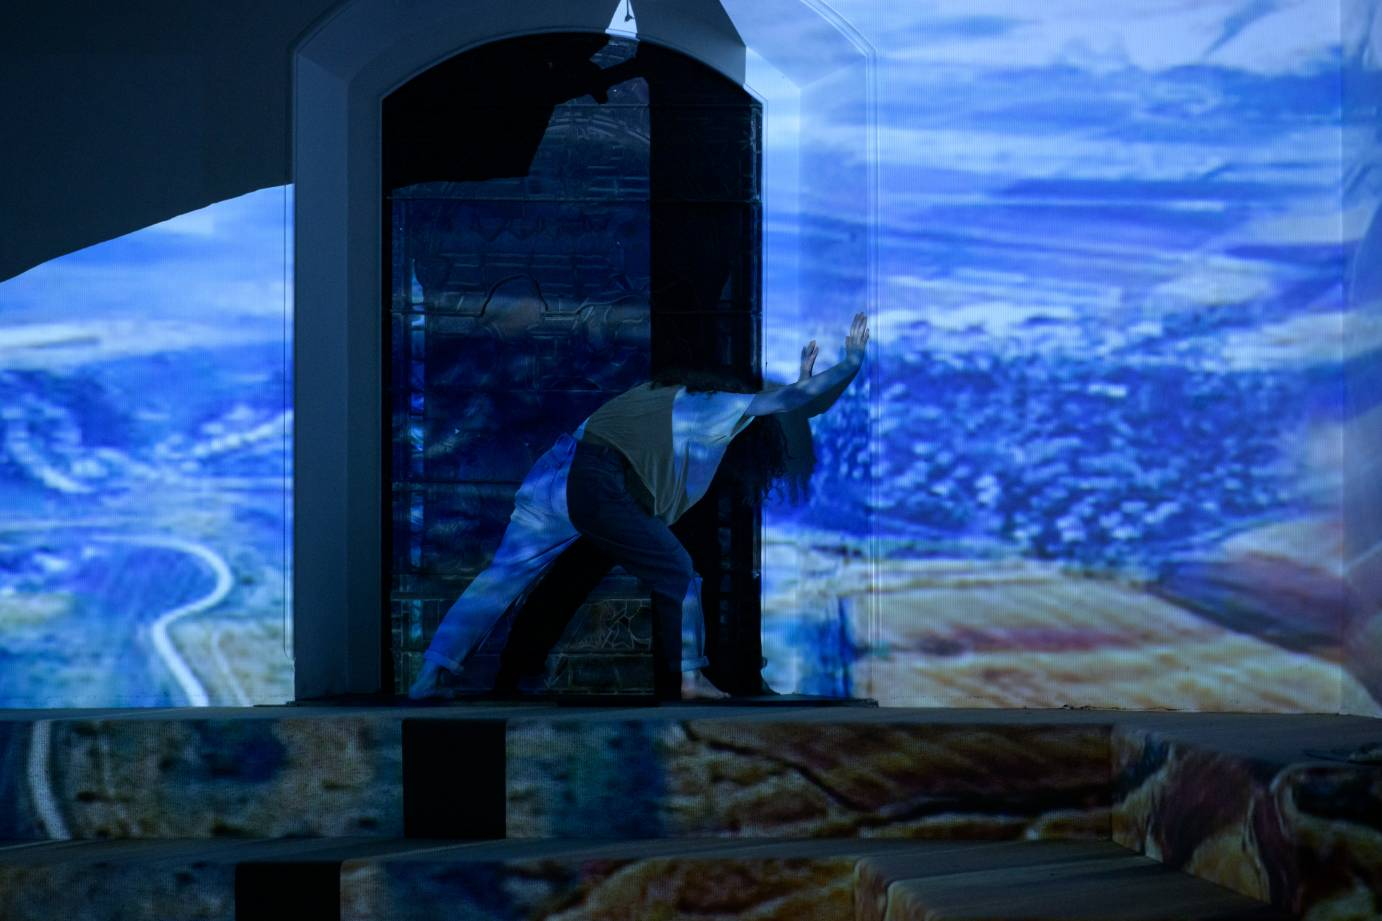 A woman lunges against a nave, drenched in a projection of a landscape